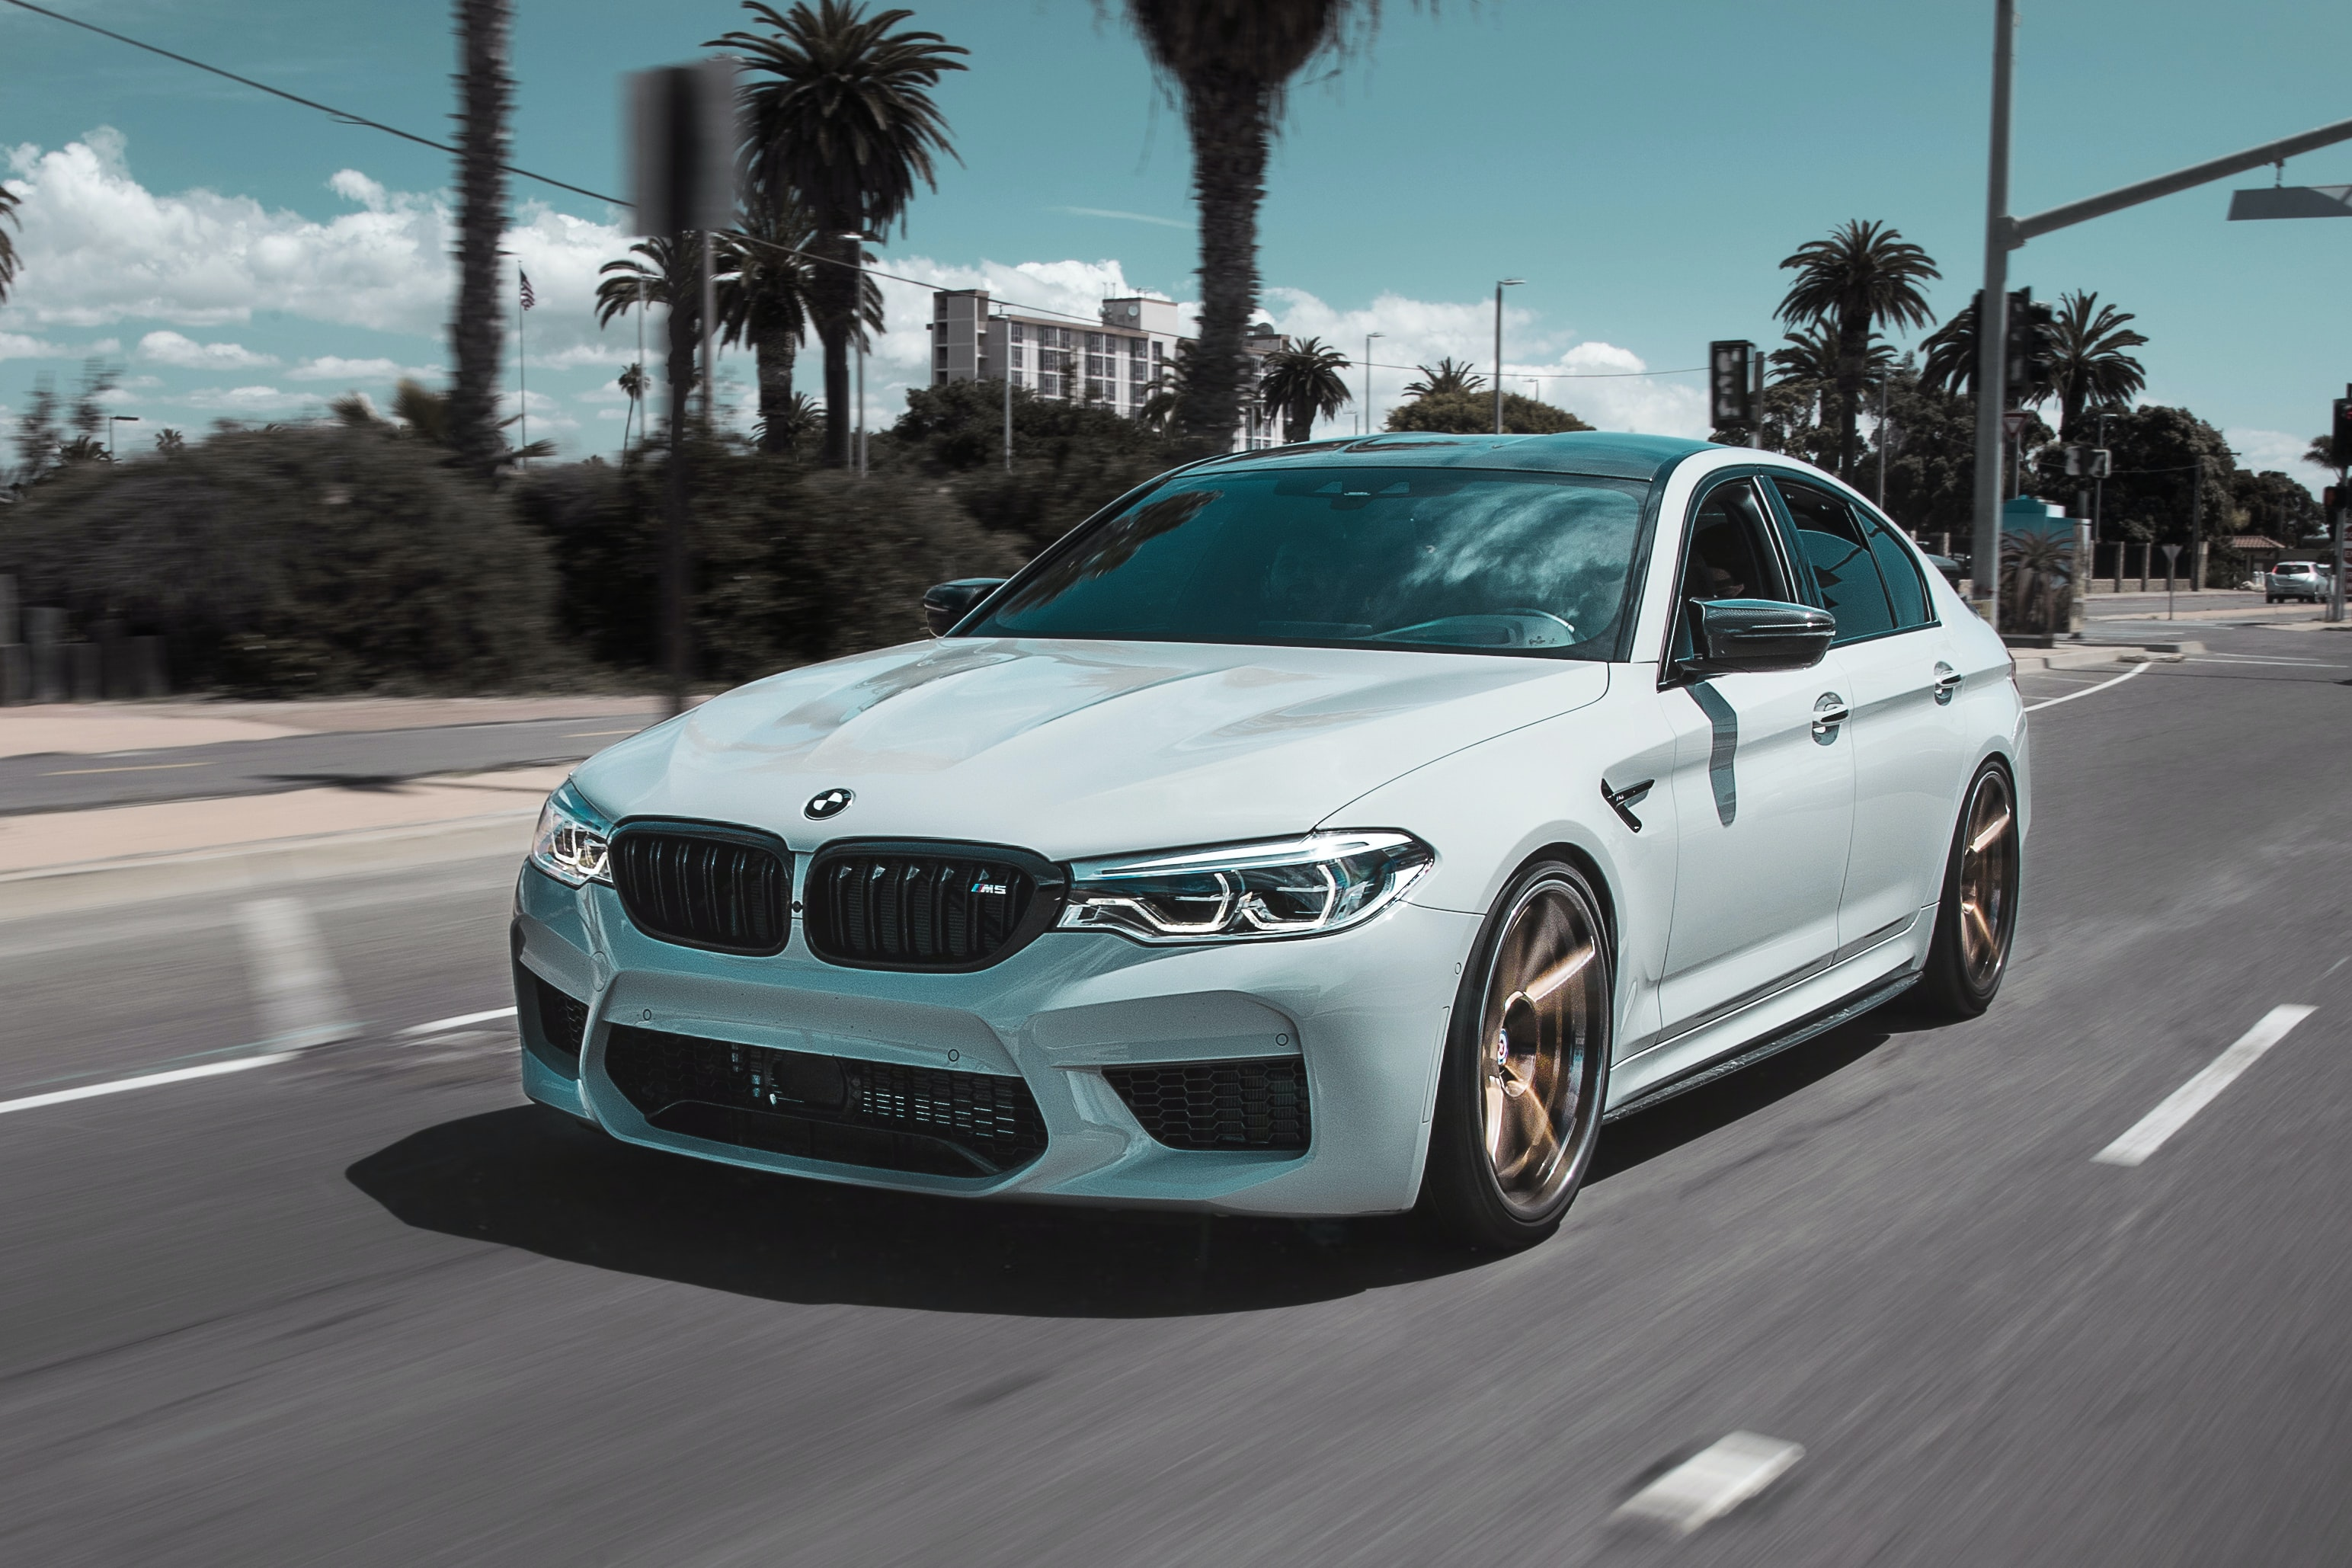 Bmw Wallpapers Free Hd Download 500 Hq Unsplash